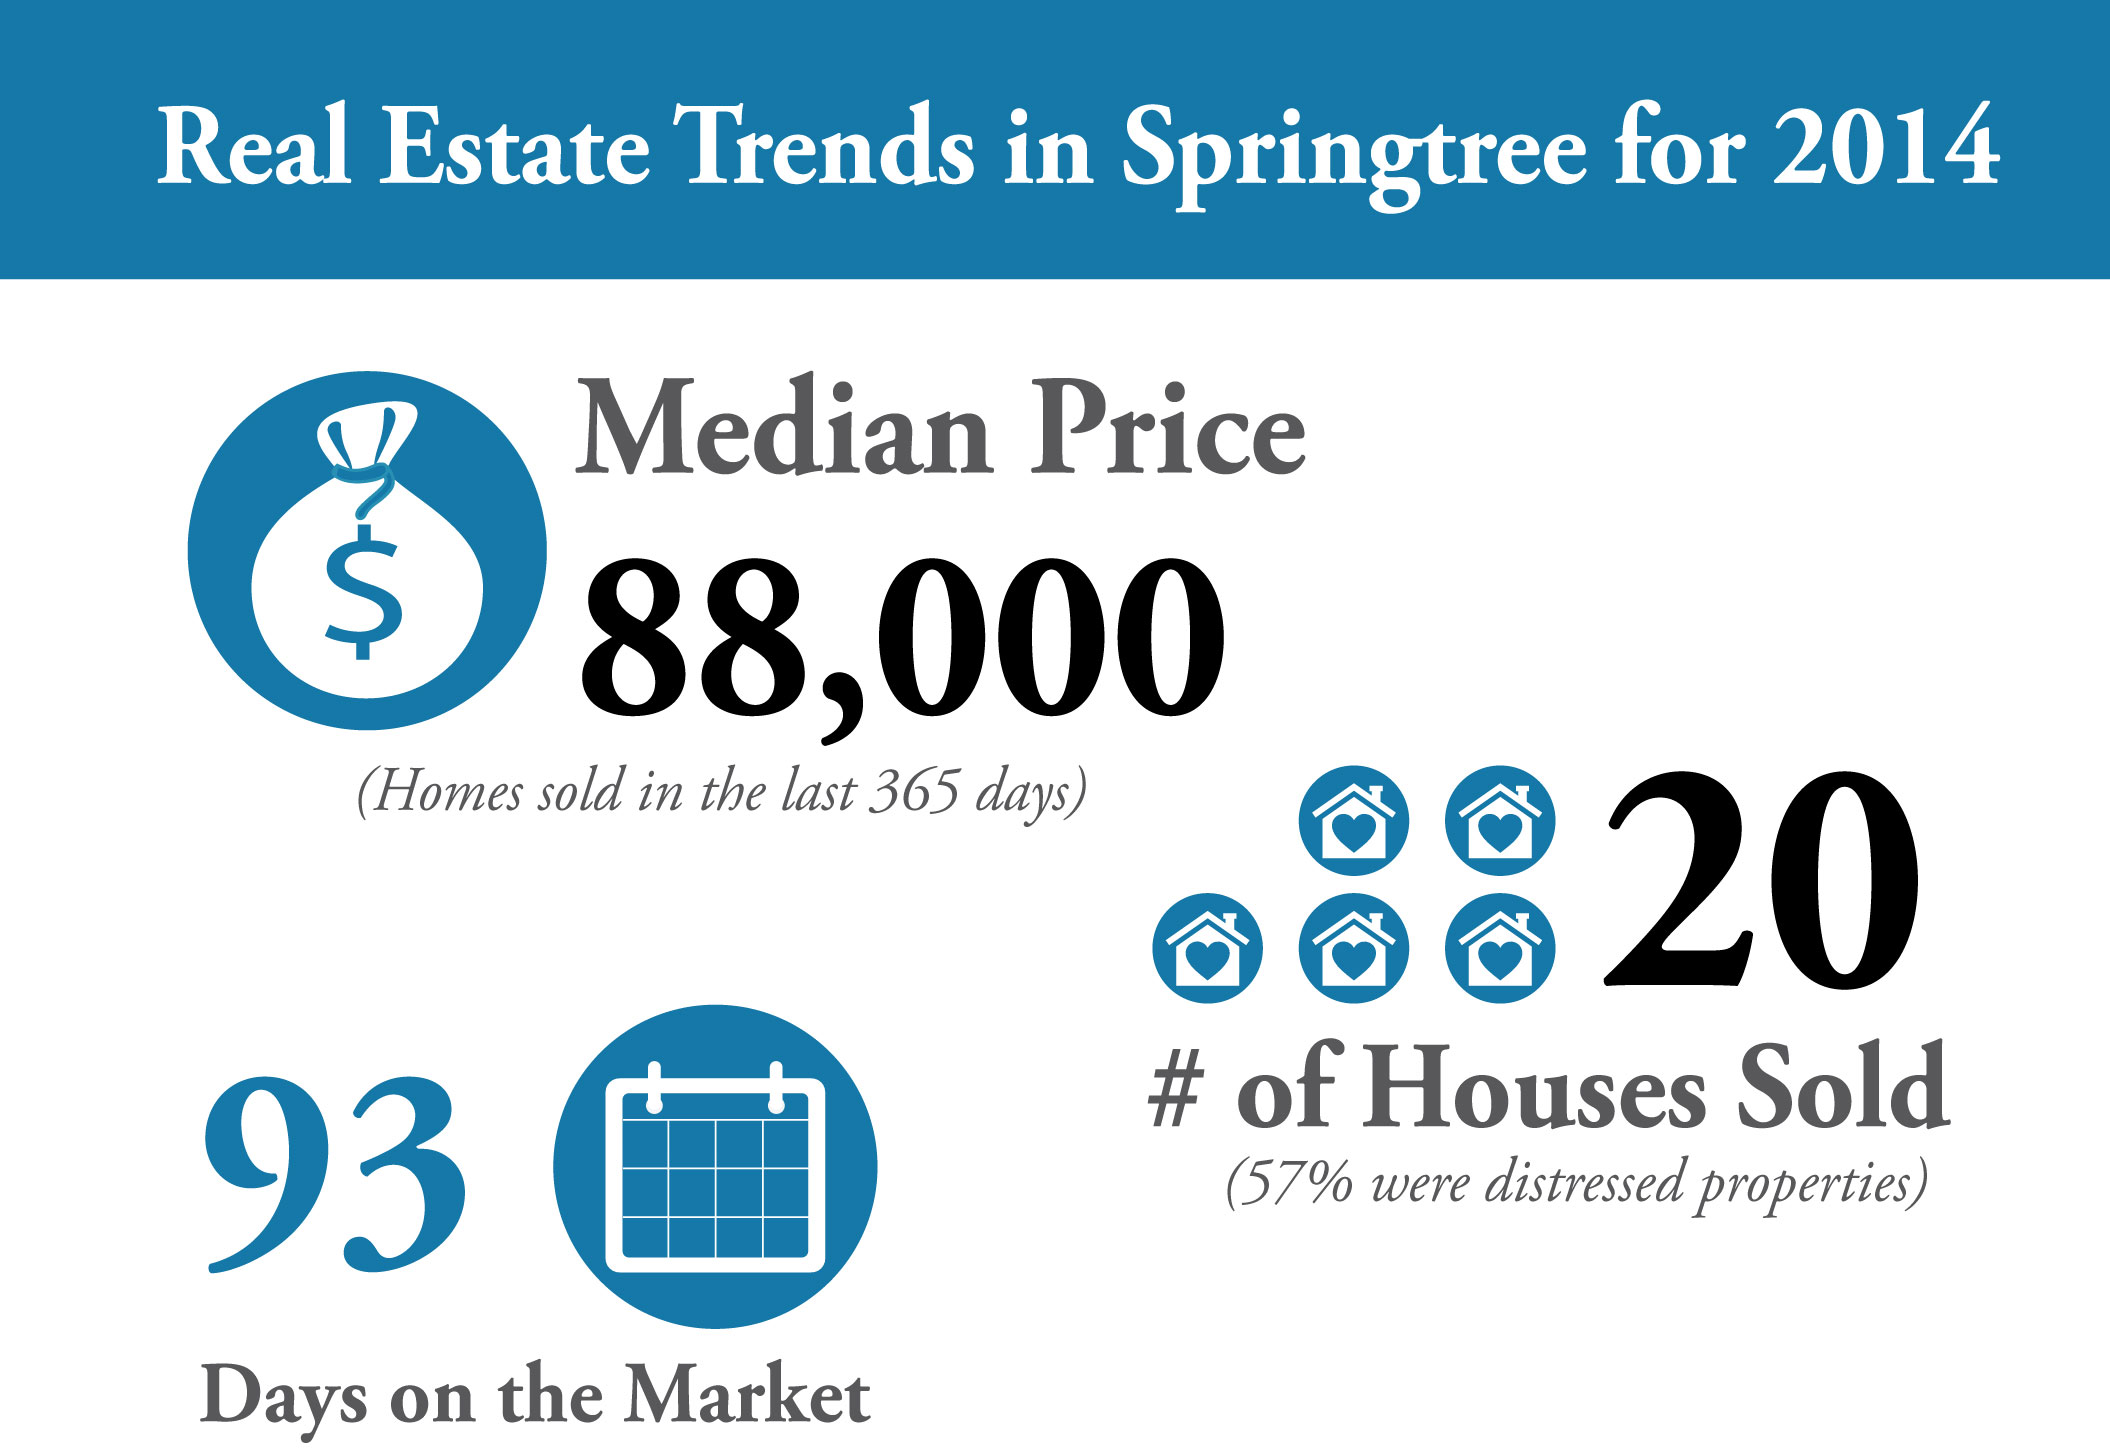 Springtree Neighborhood real estate market trends